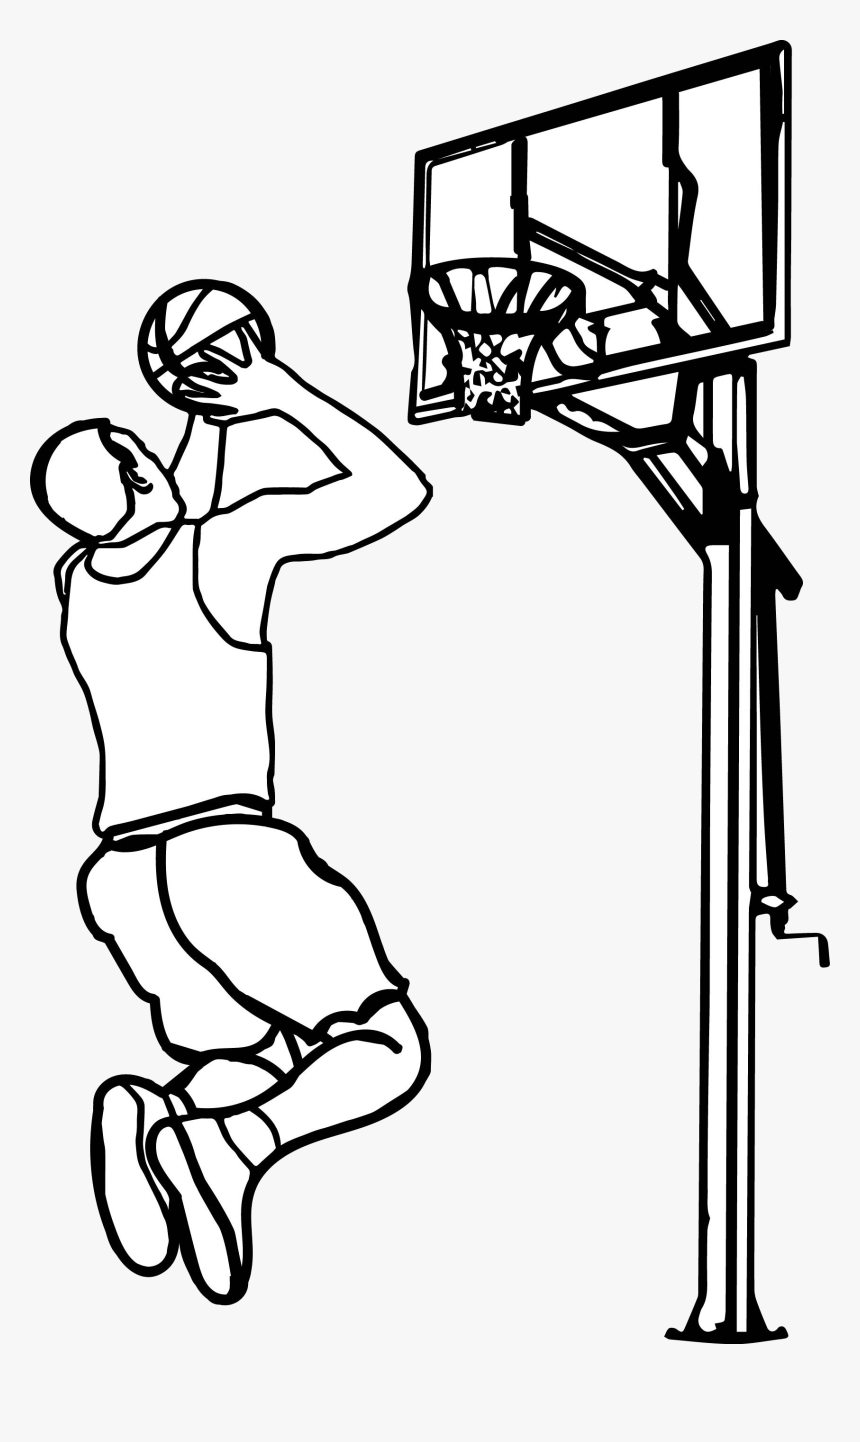 Basketball Outline Playing Clipart The Cliparts Play - Playing Basketball Clipart Black And White, HD Png Download, Free Download